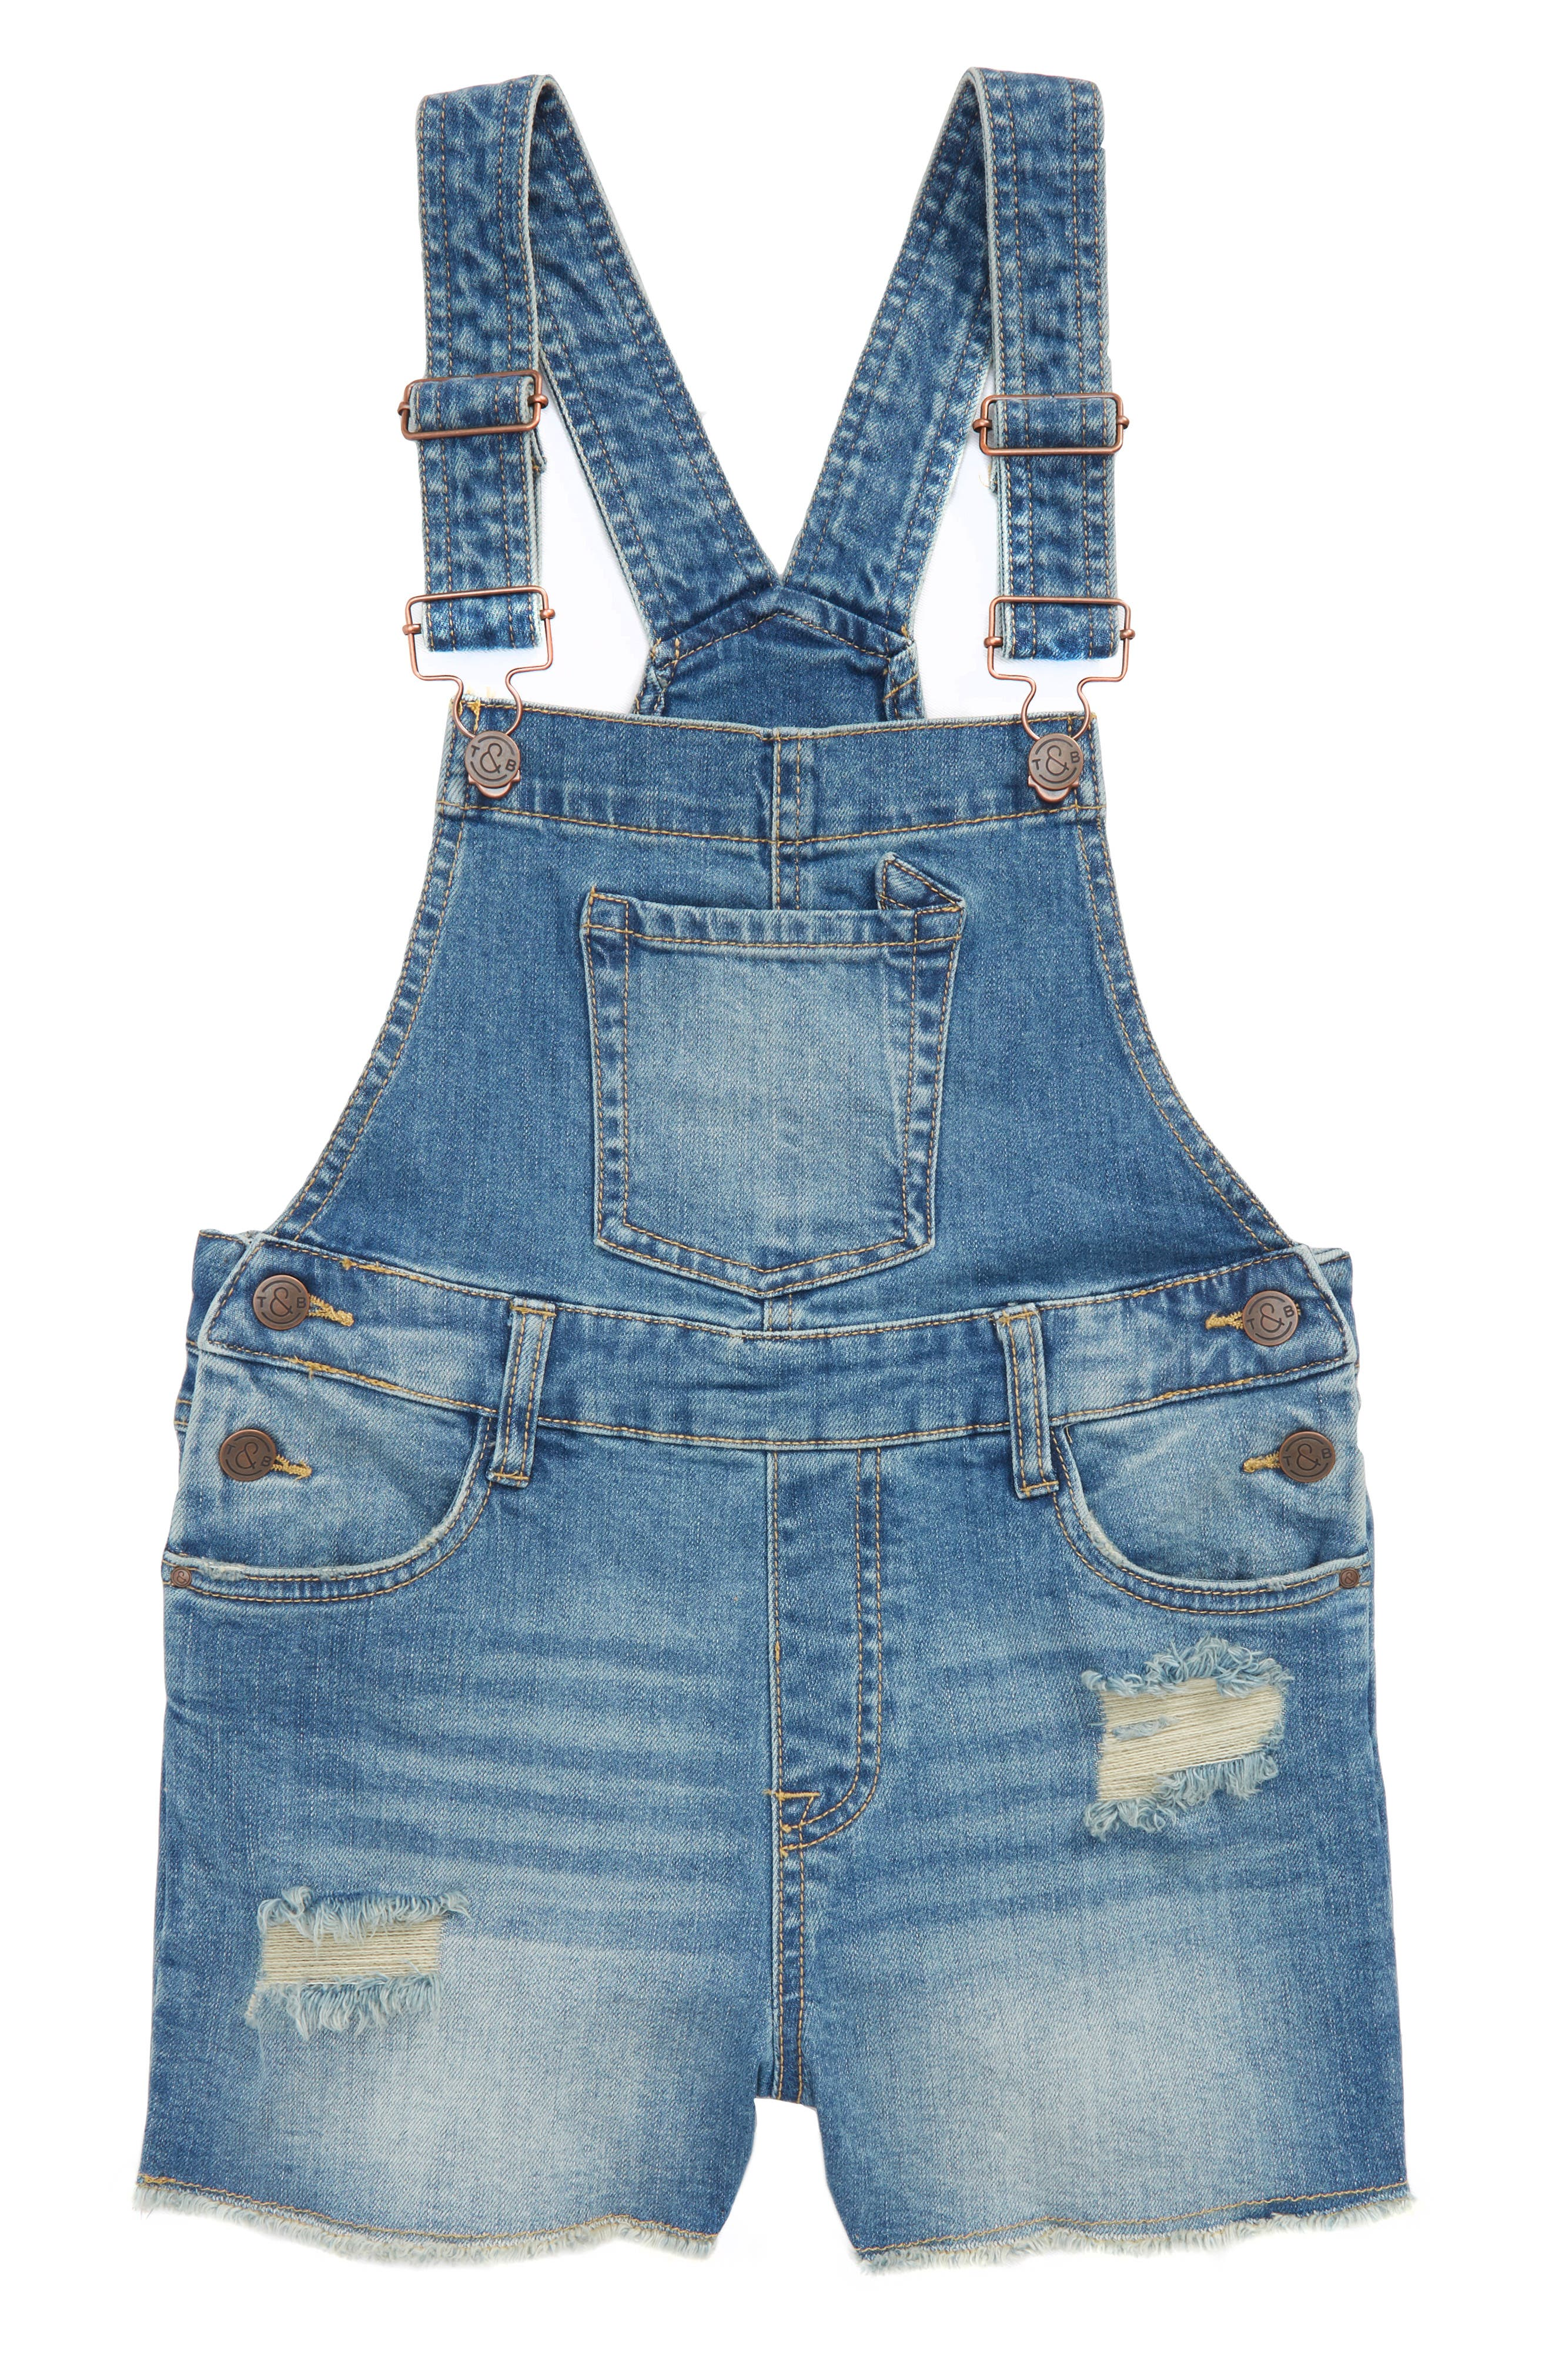 Distressed Denim Overall Shorts,                             Main thumbnail 1, color,                             420